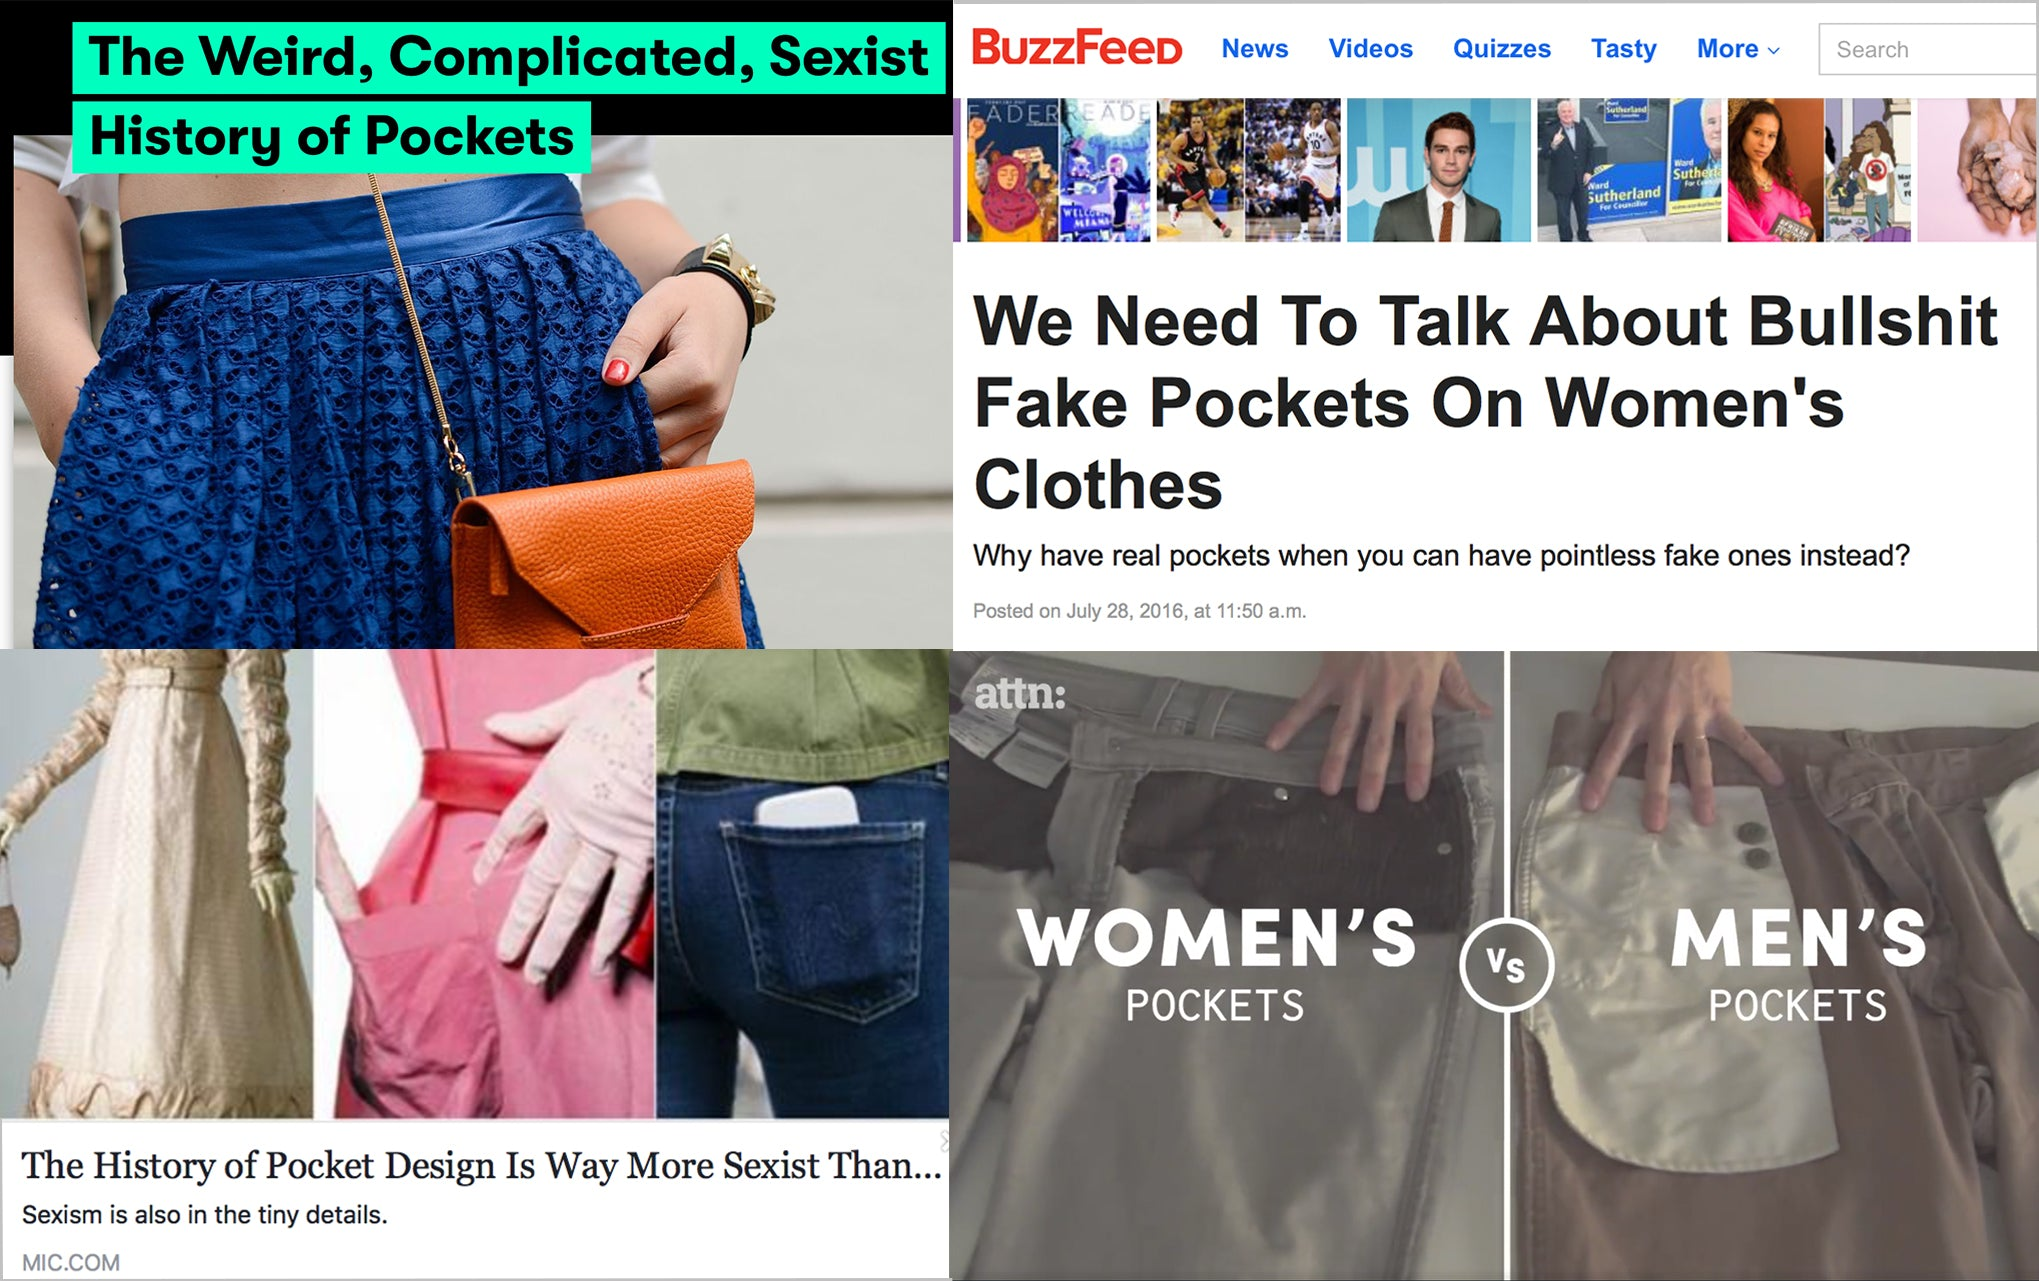 b5ccdecd8e3 ... media posts of women wanting pockets blew up